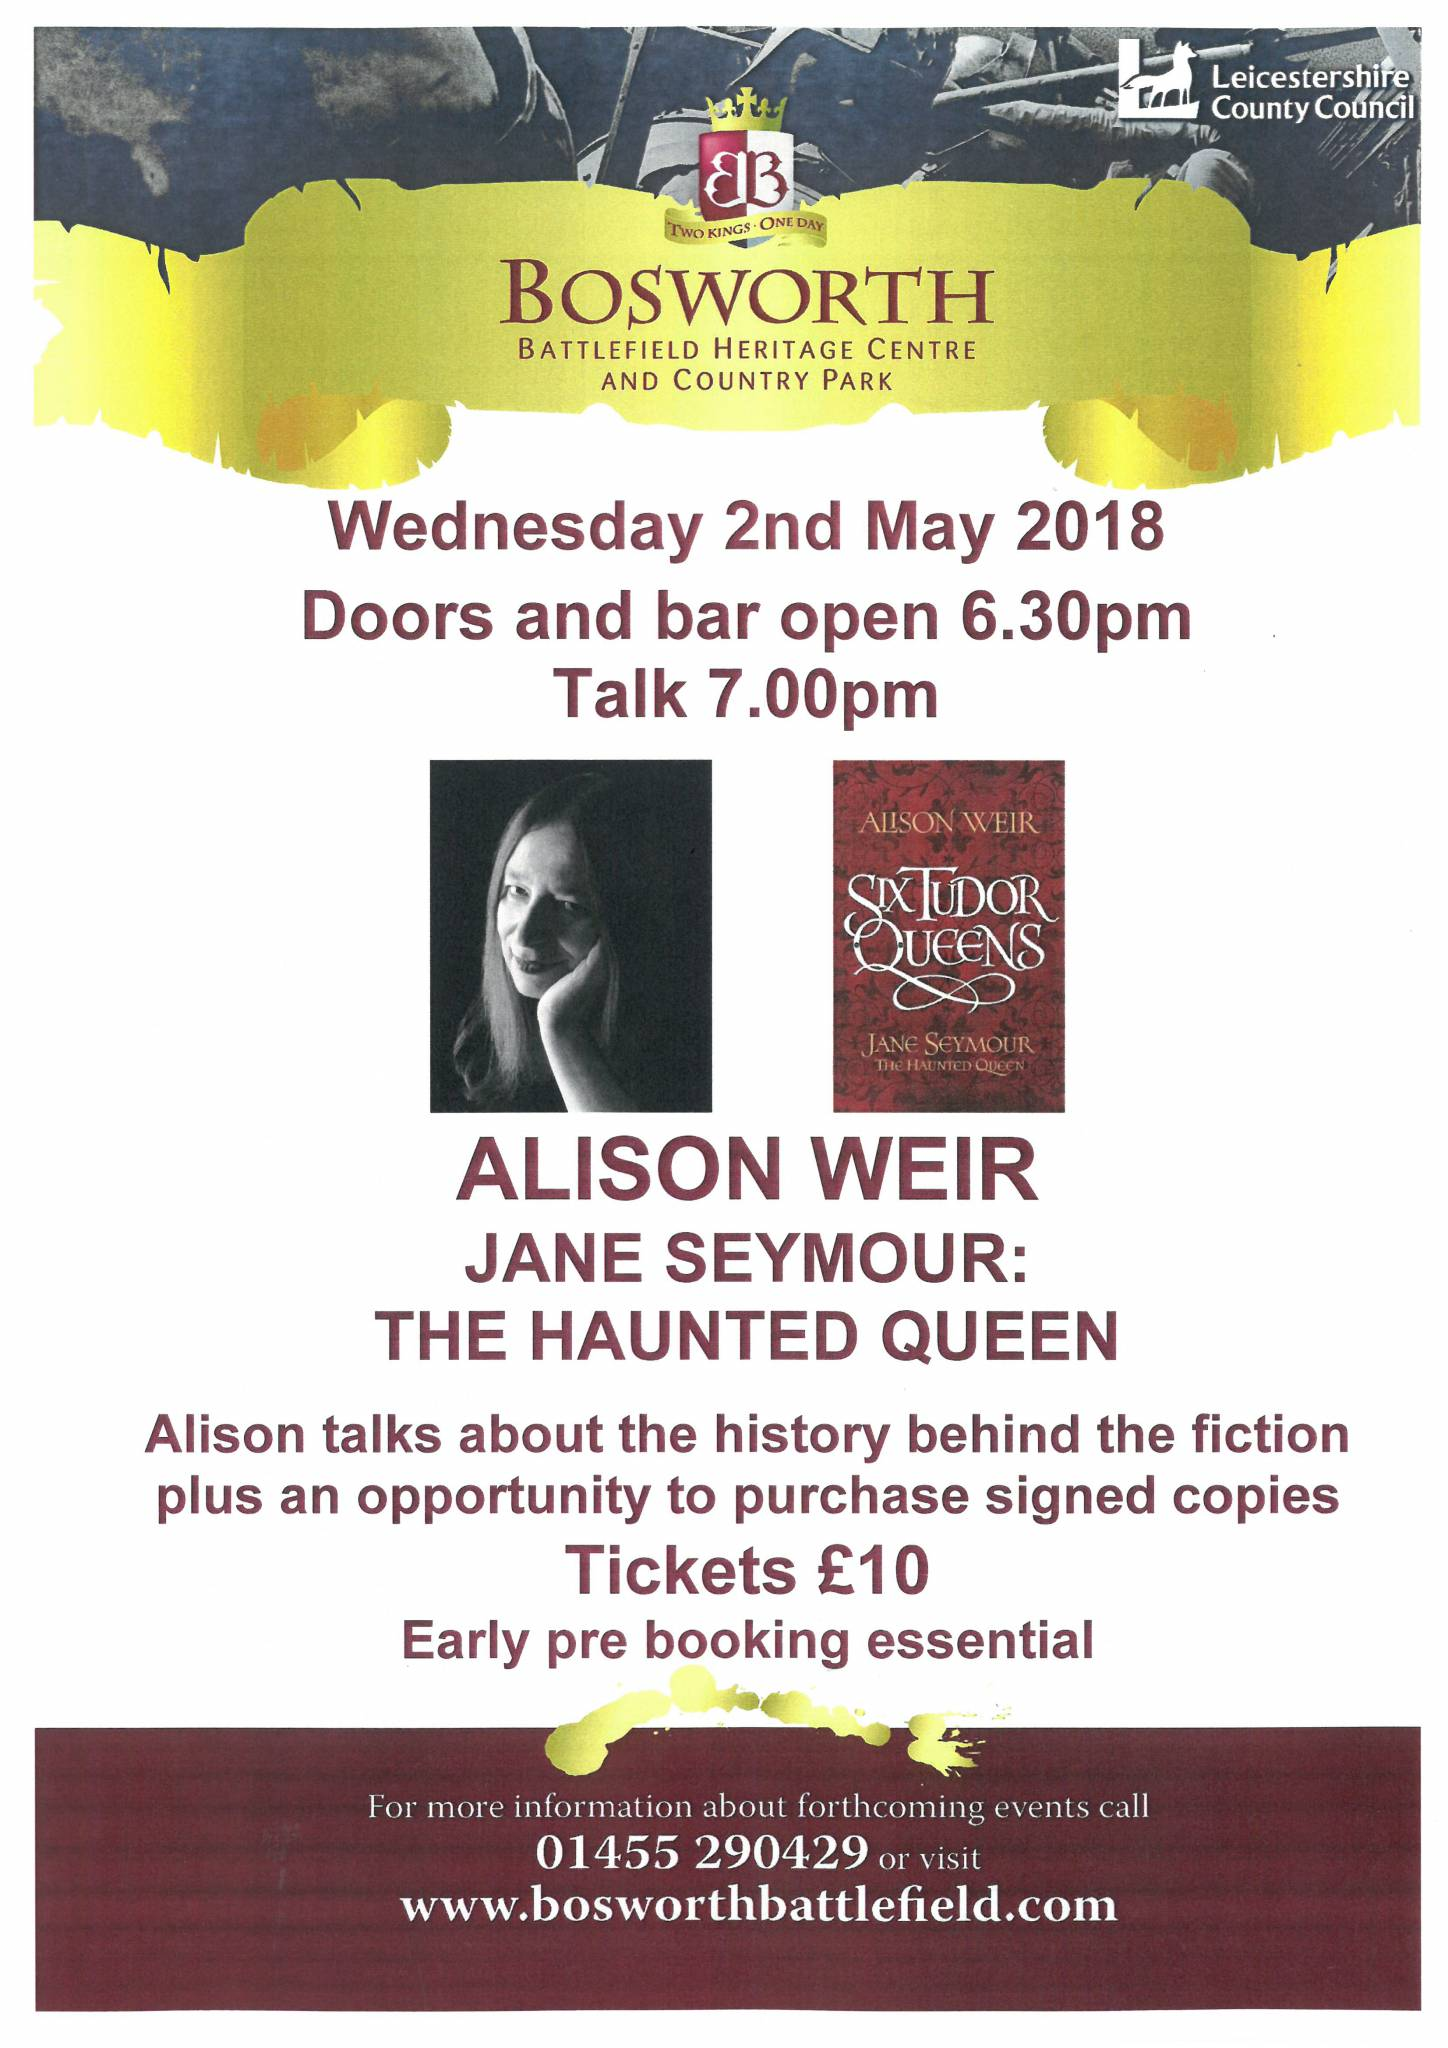 Alison Weir Talk - Jane Seymour: The Haunted Queen SOLD OUT